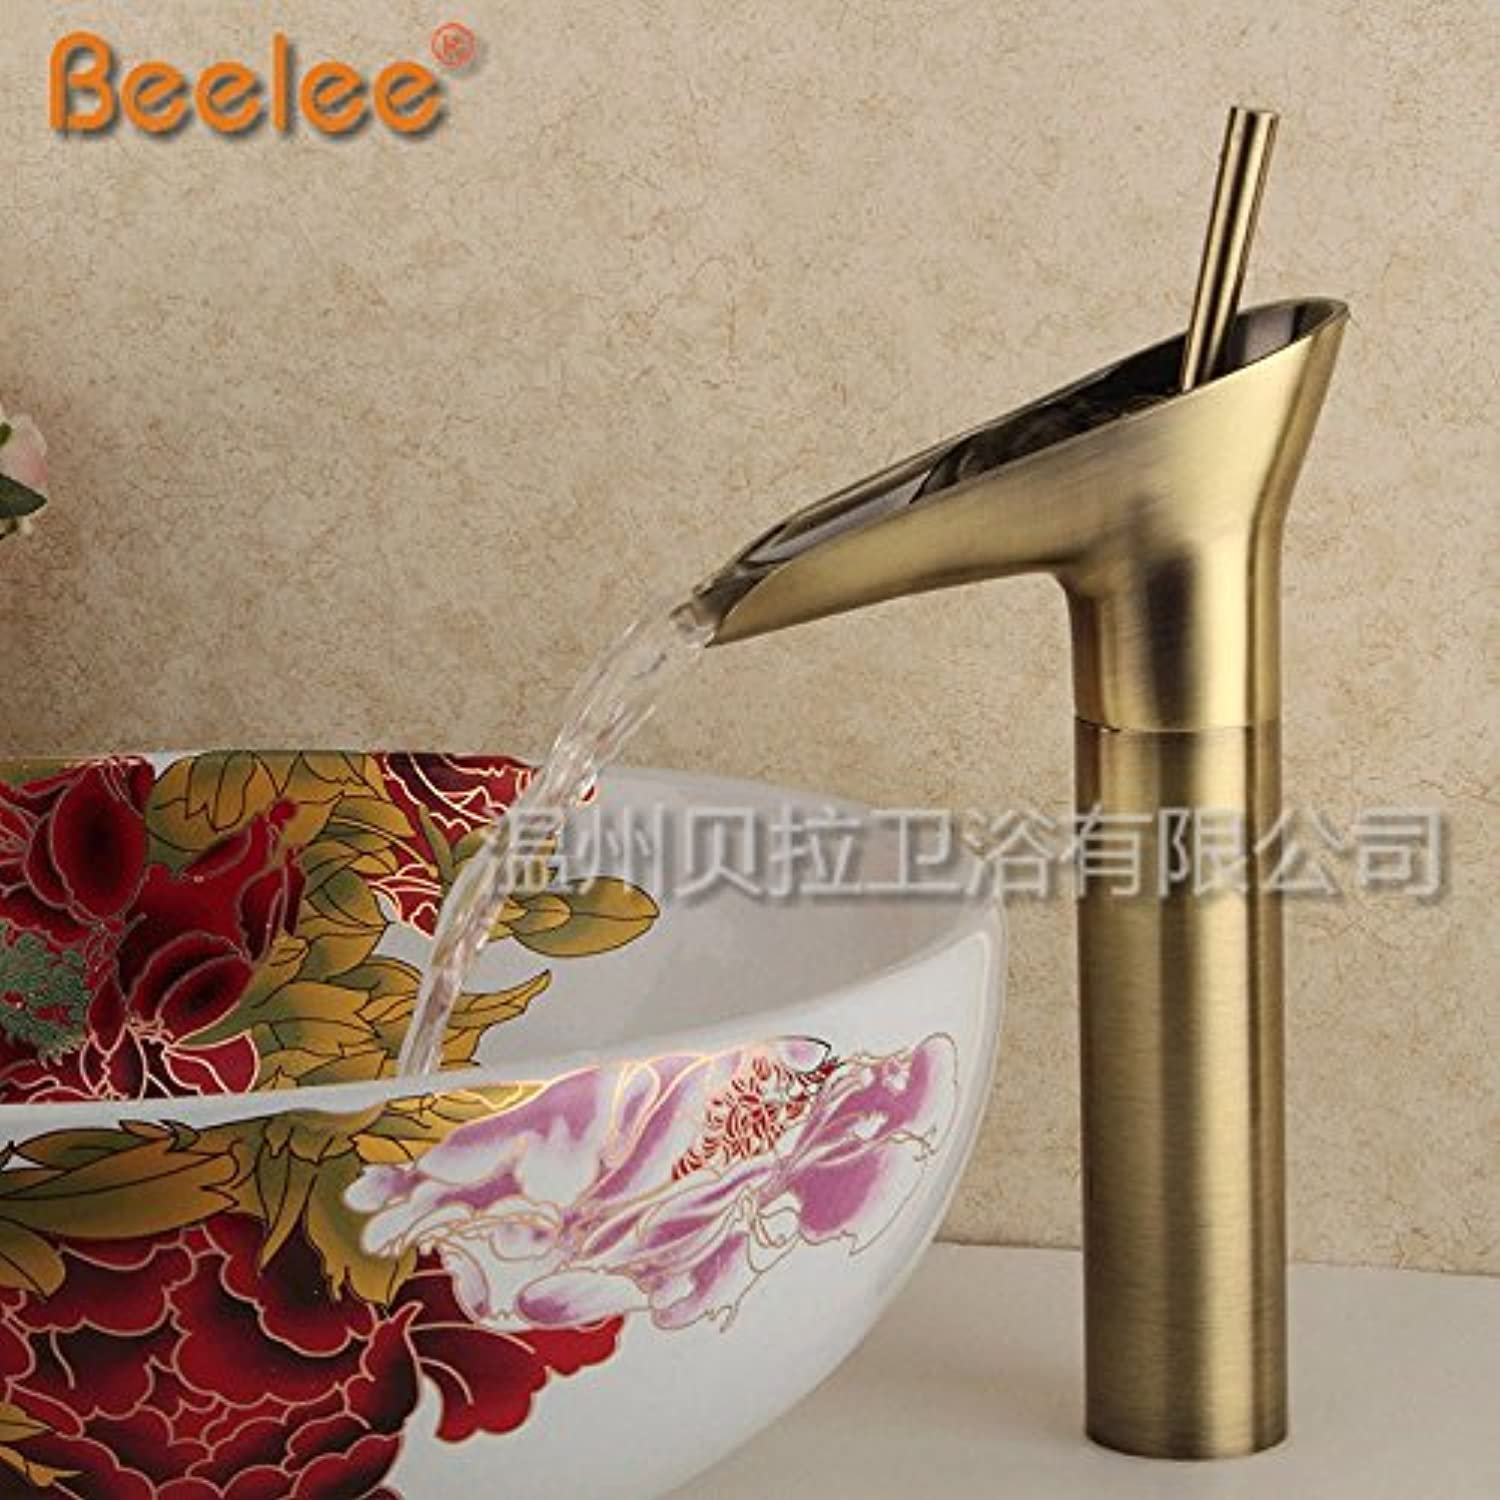 Commercial Single Lever Pull Down Kitchen Sink Faucet Brass Nordic Modern Minimalist Retro gold Stainless Steel Waterfall Pure Copper Bathroom Basin Faucet Hotel Kitchen Bathroom Dining Room